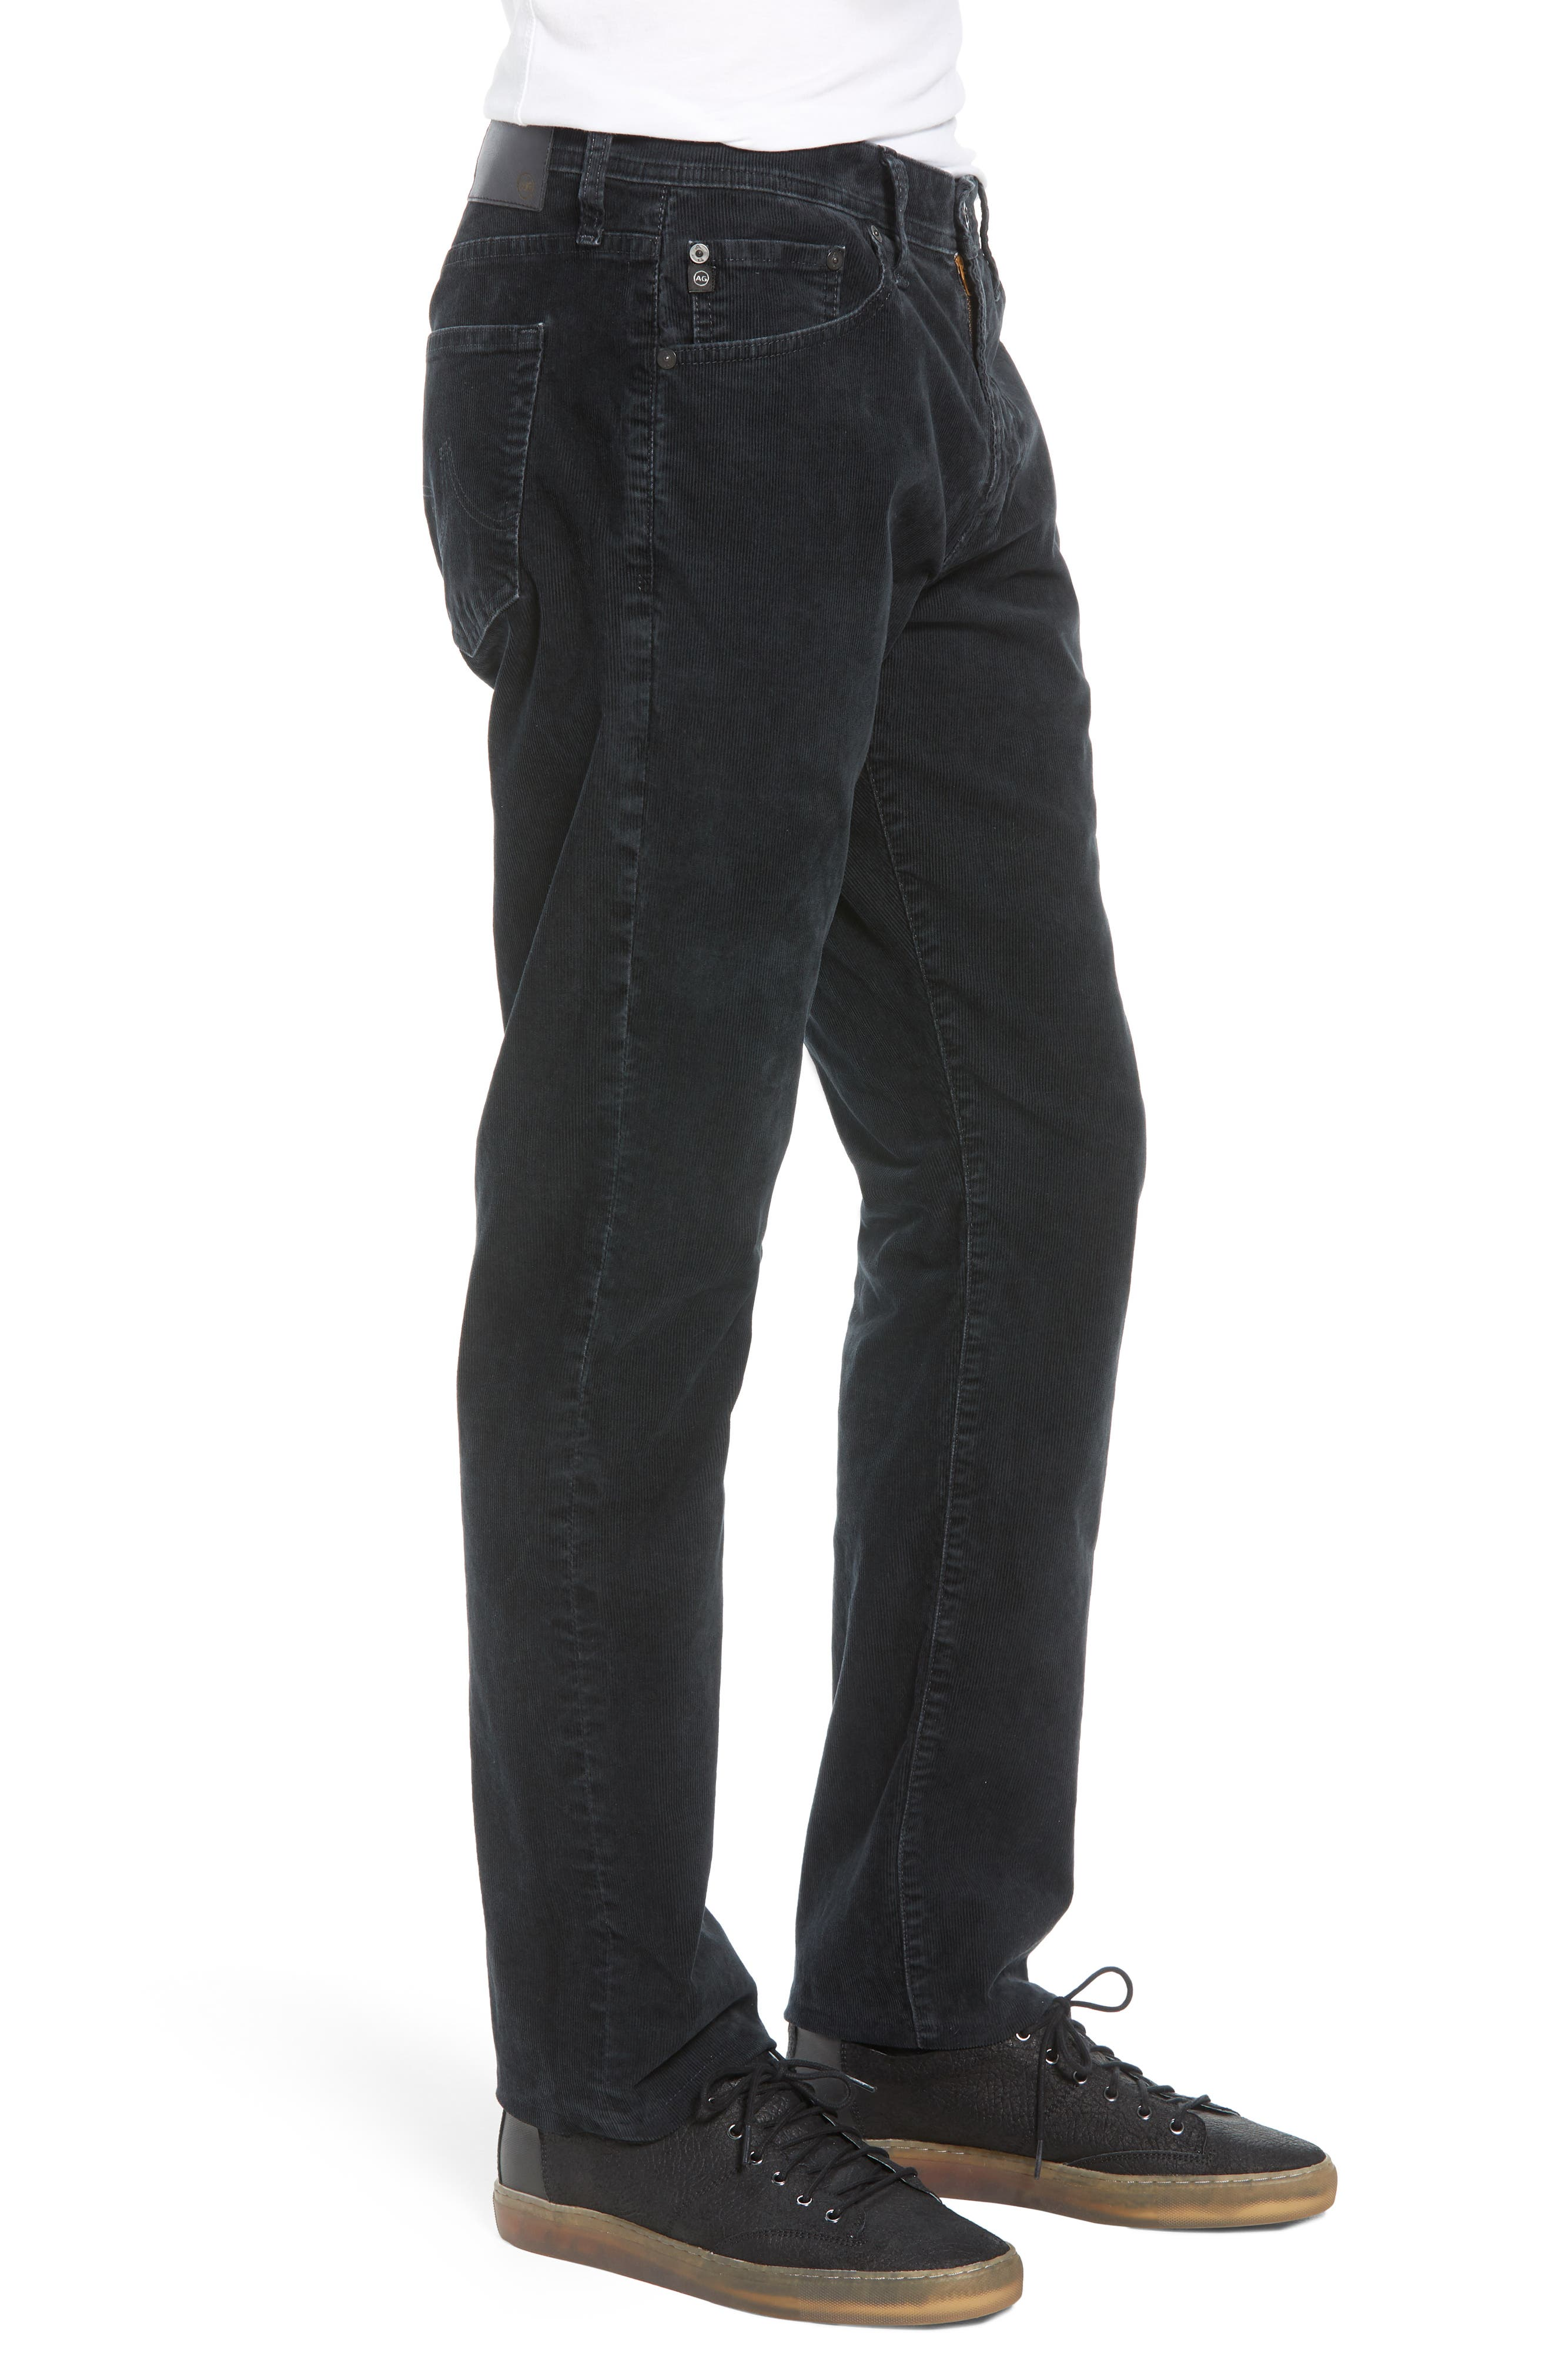 Everett Straight Leg Corduroy Pants,                             Alternate thumbnail 3, color,                             SULFUR ASH BLACK